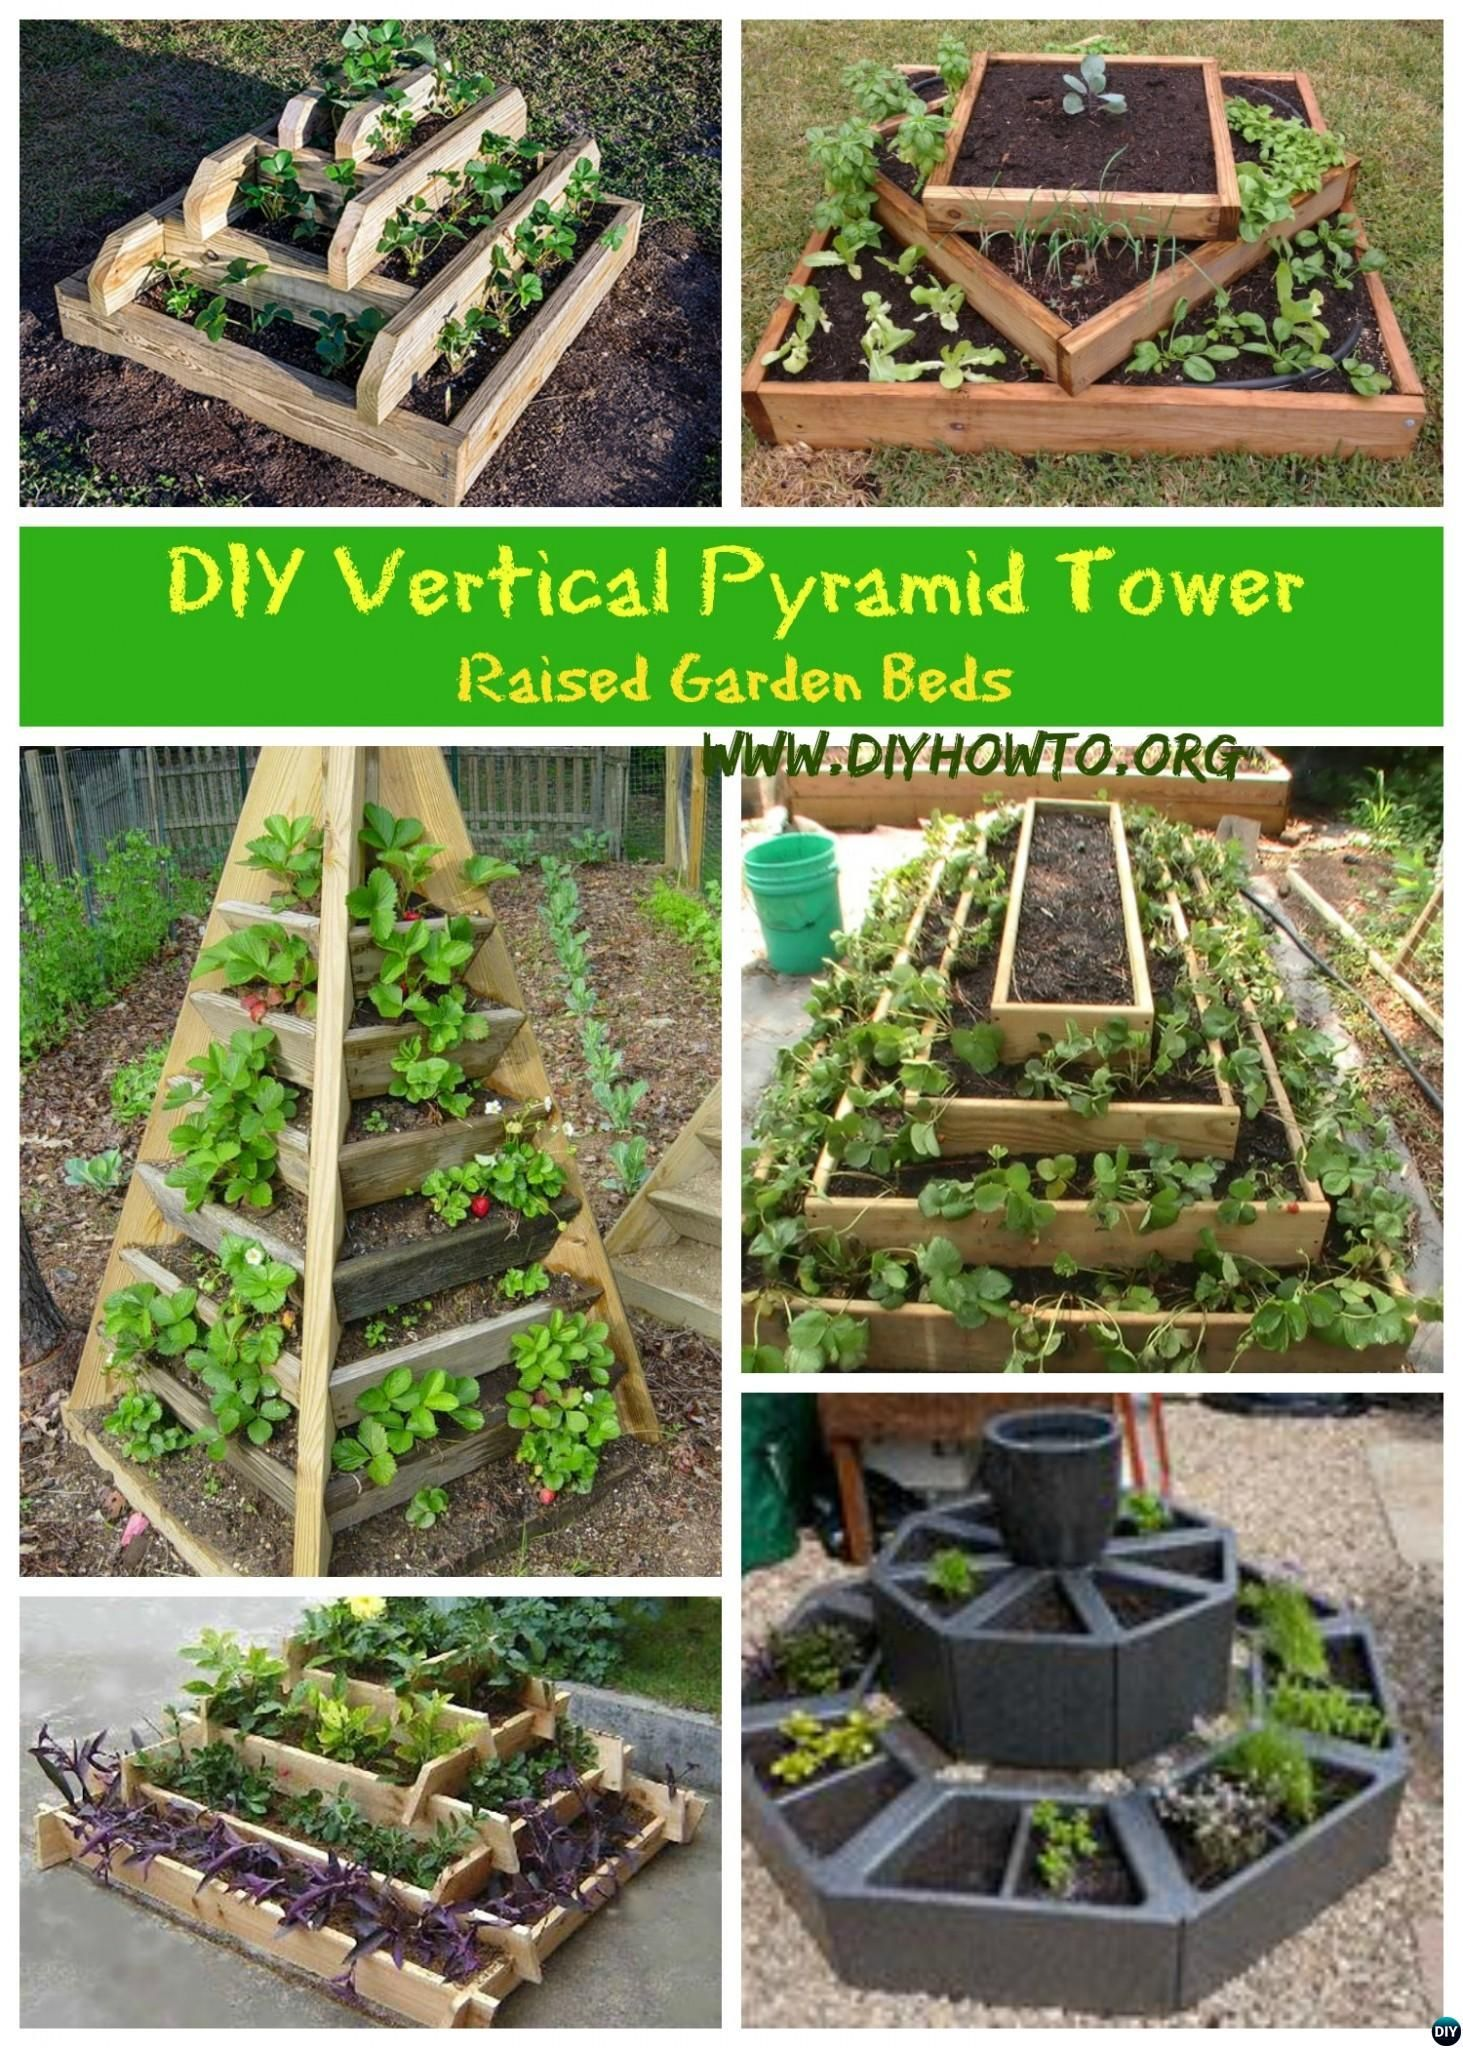 DIY Vertical Pyramid Tower Planters and Raised Garden